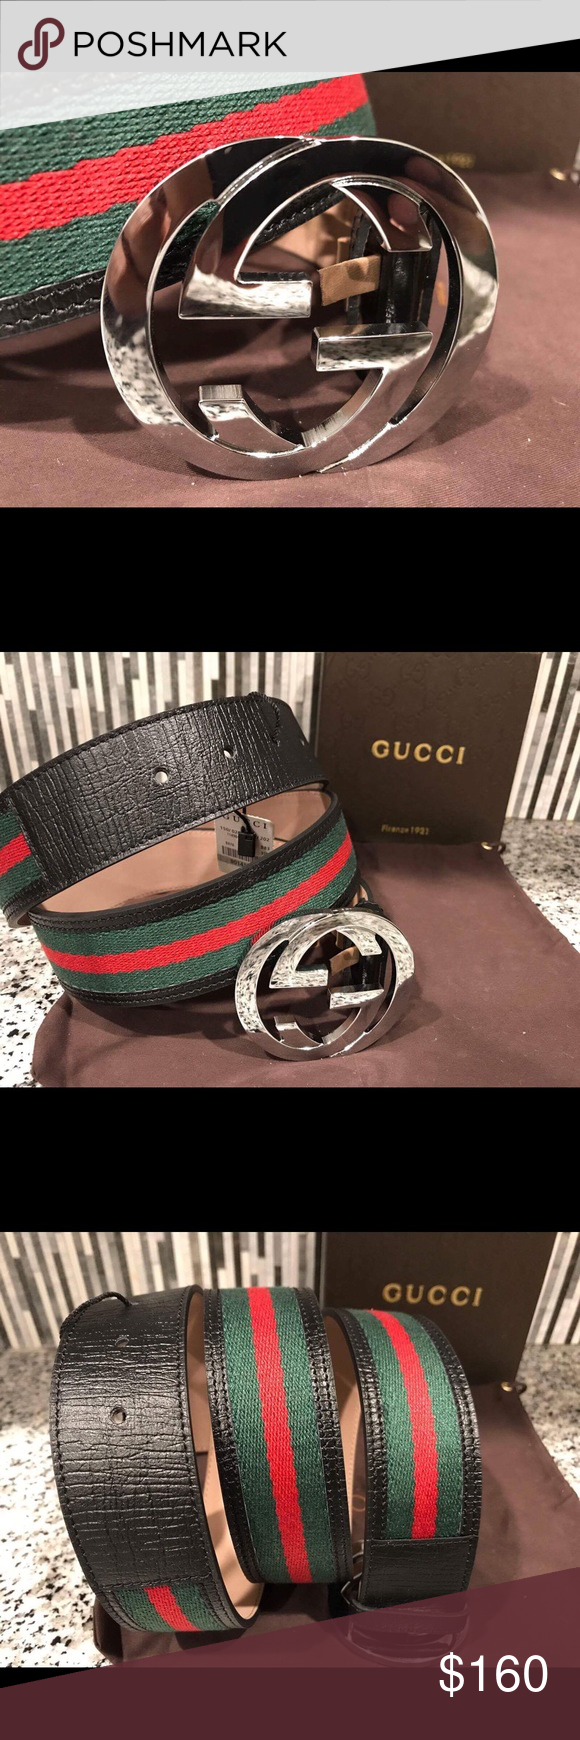 8289bac0300 Authentic Men s Gucci Belt Black Green Red   100% Authentic   Made in Italy  🇮🇹   Comes with box dust bag and tags   Amazing deal compared to MSRP   375 ...